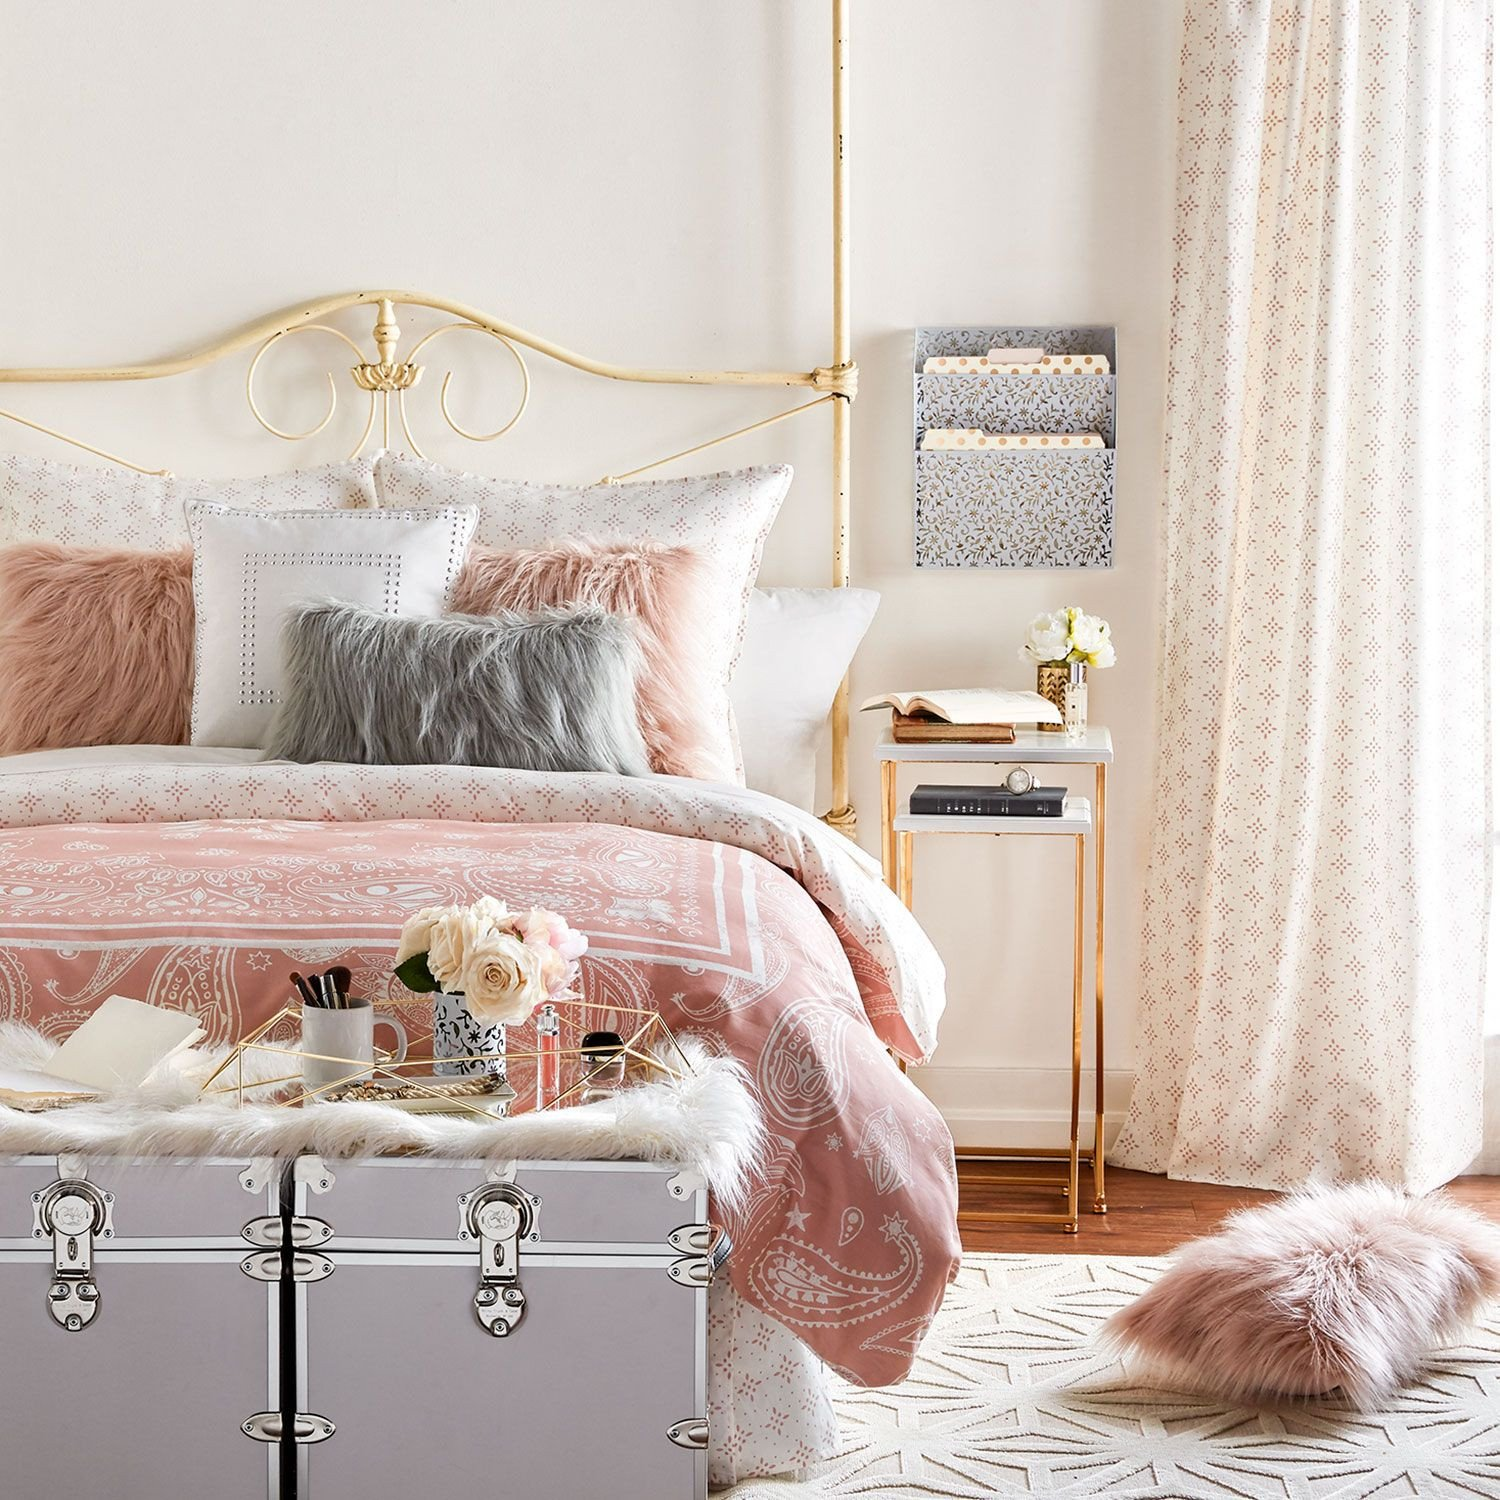 Paris Decor for Bedroom Best Of the Parisian Flat Apt by Dormify